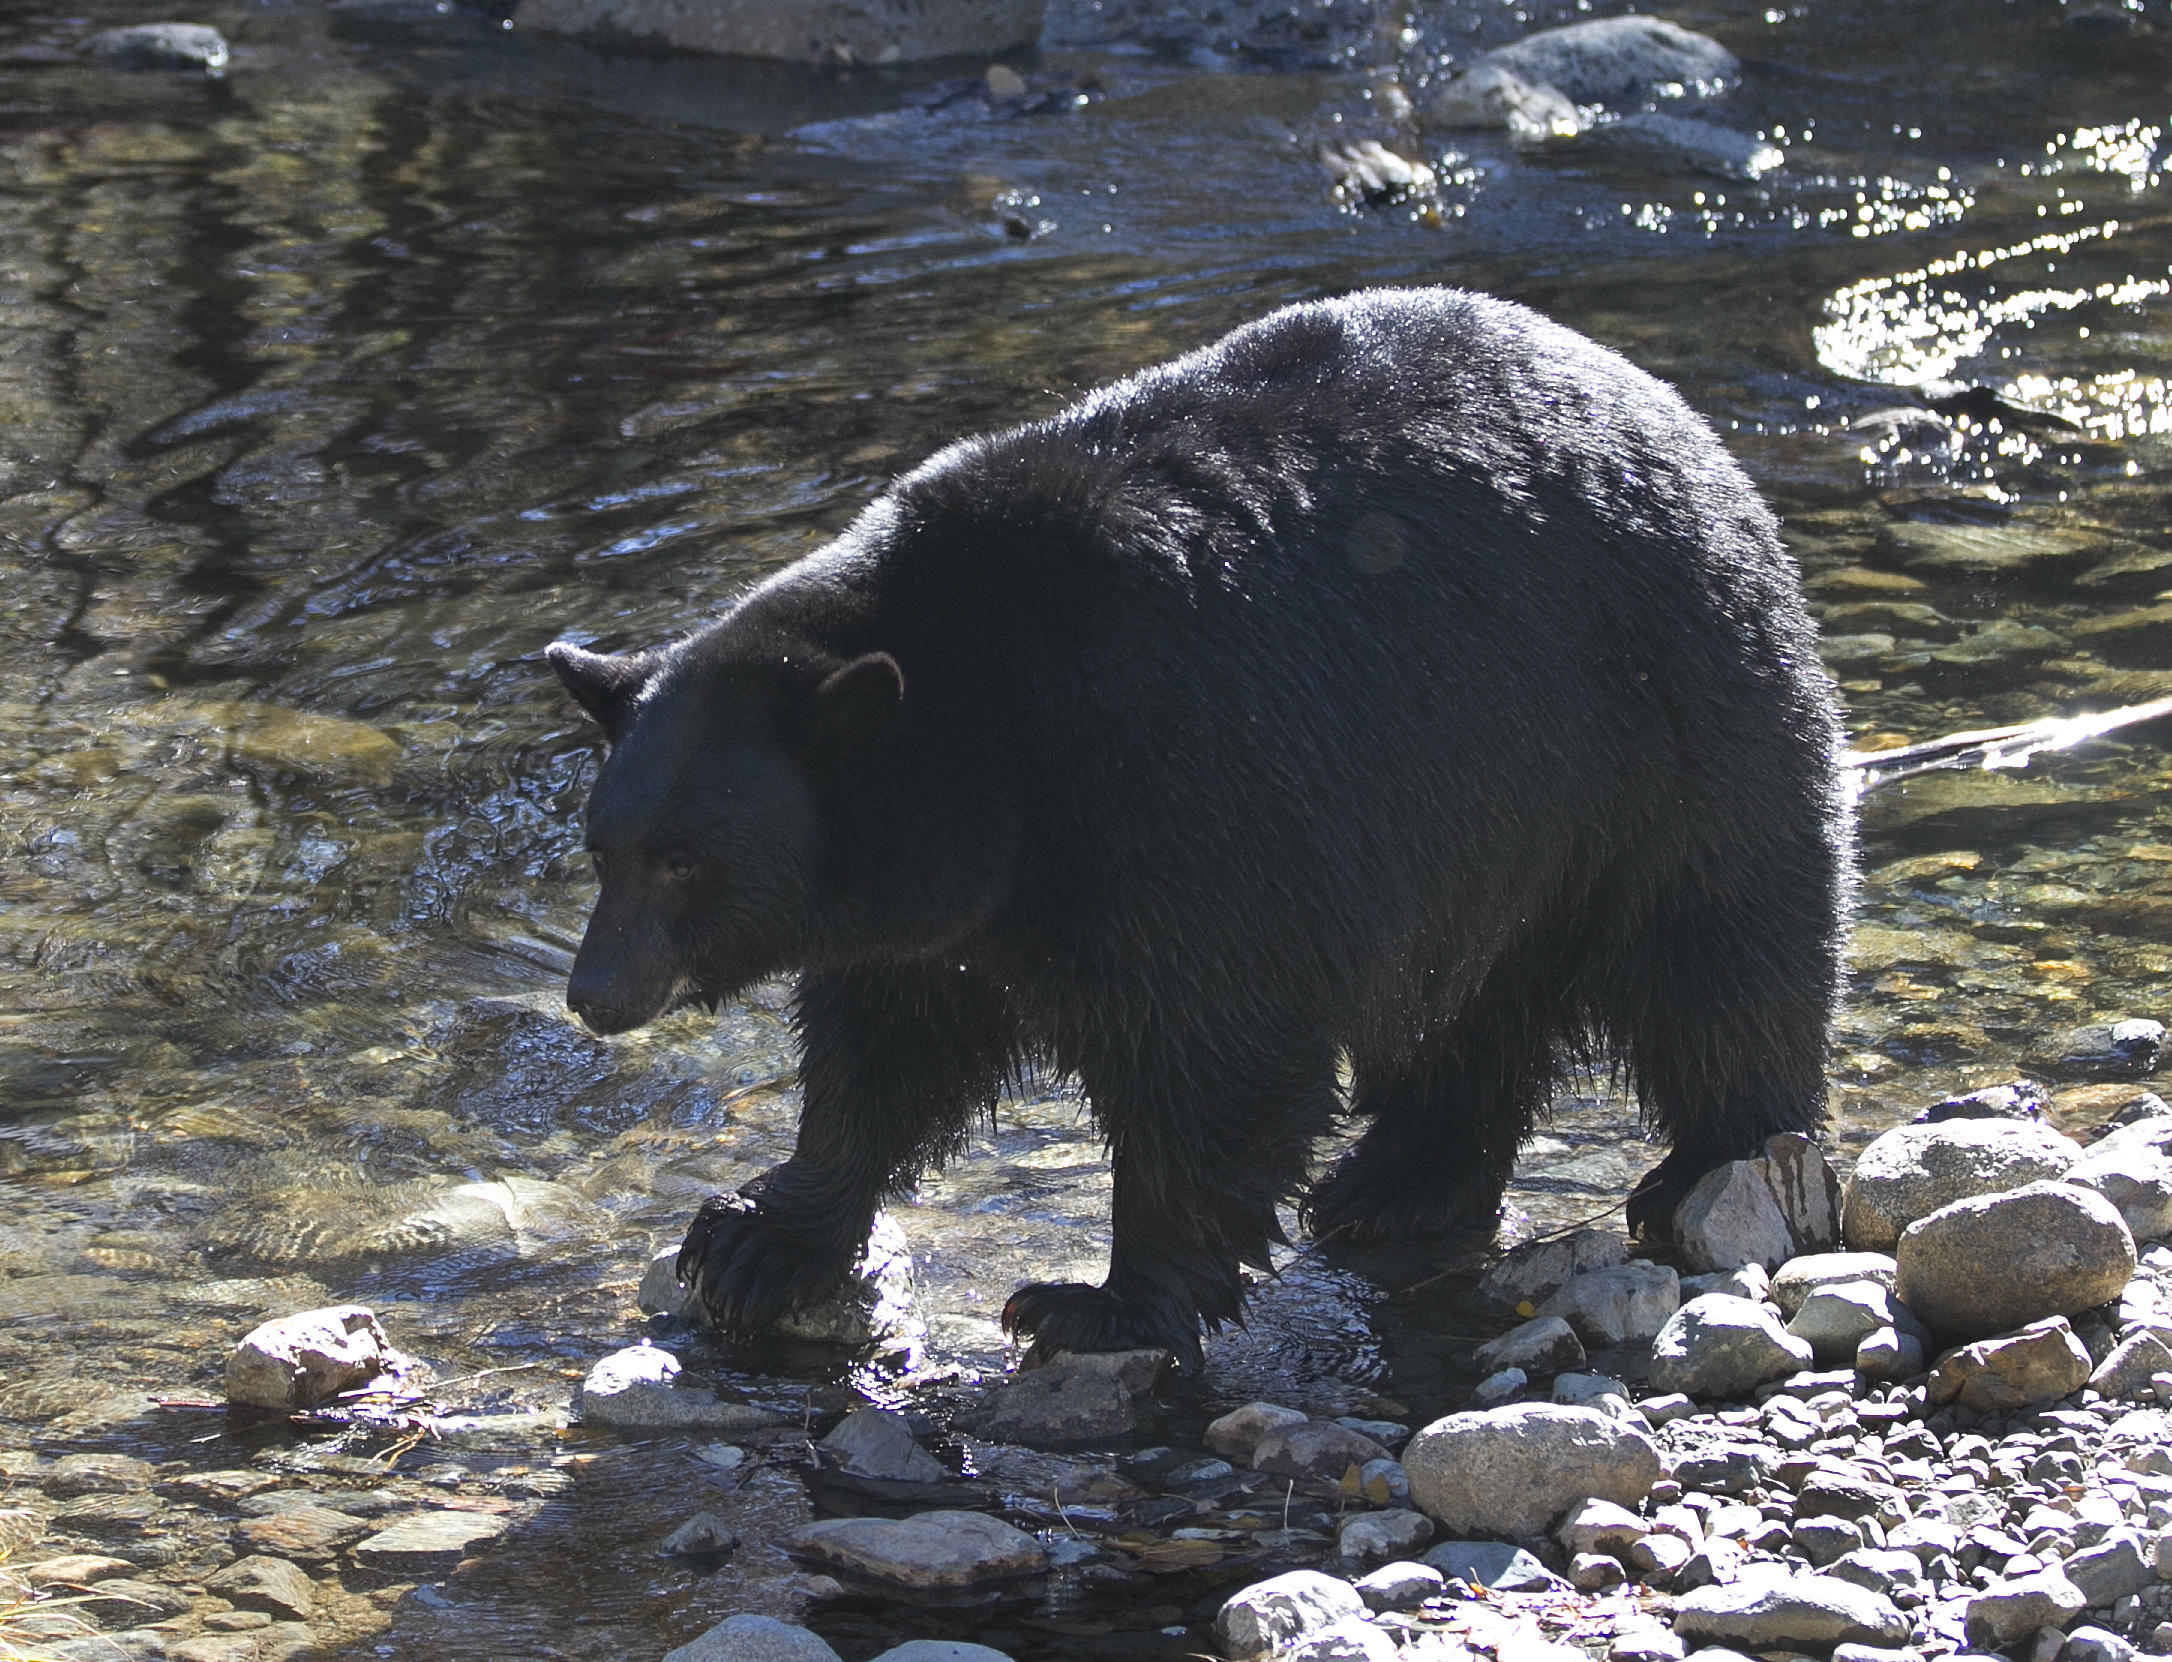 After 80-year absence, black bears return to Nevada